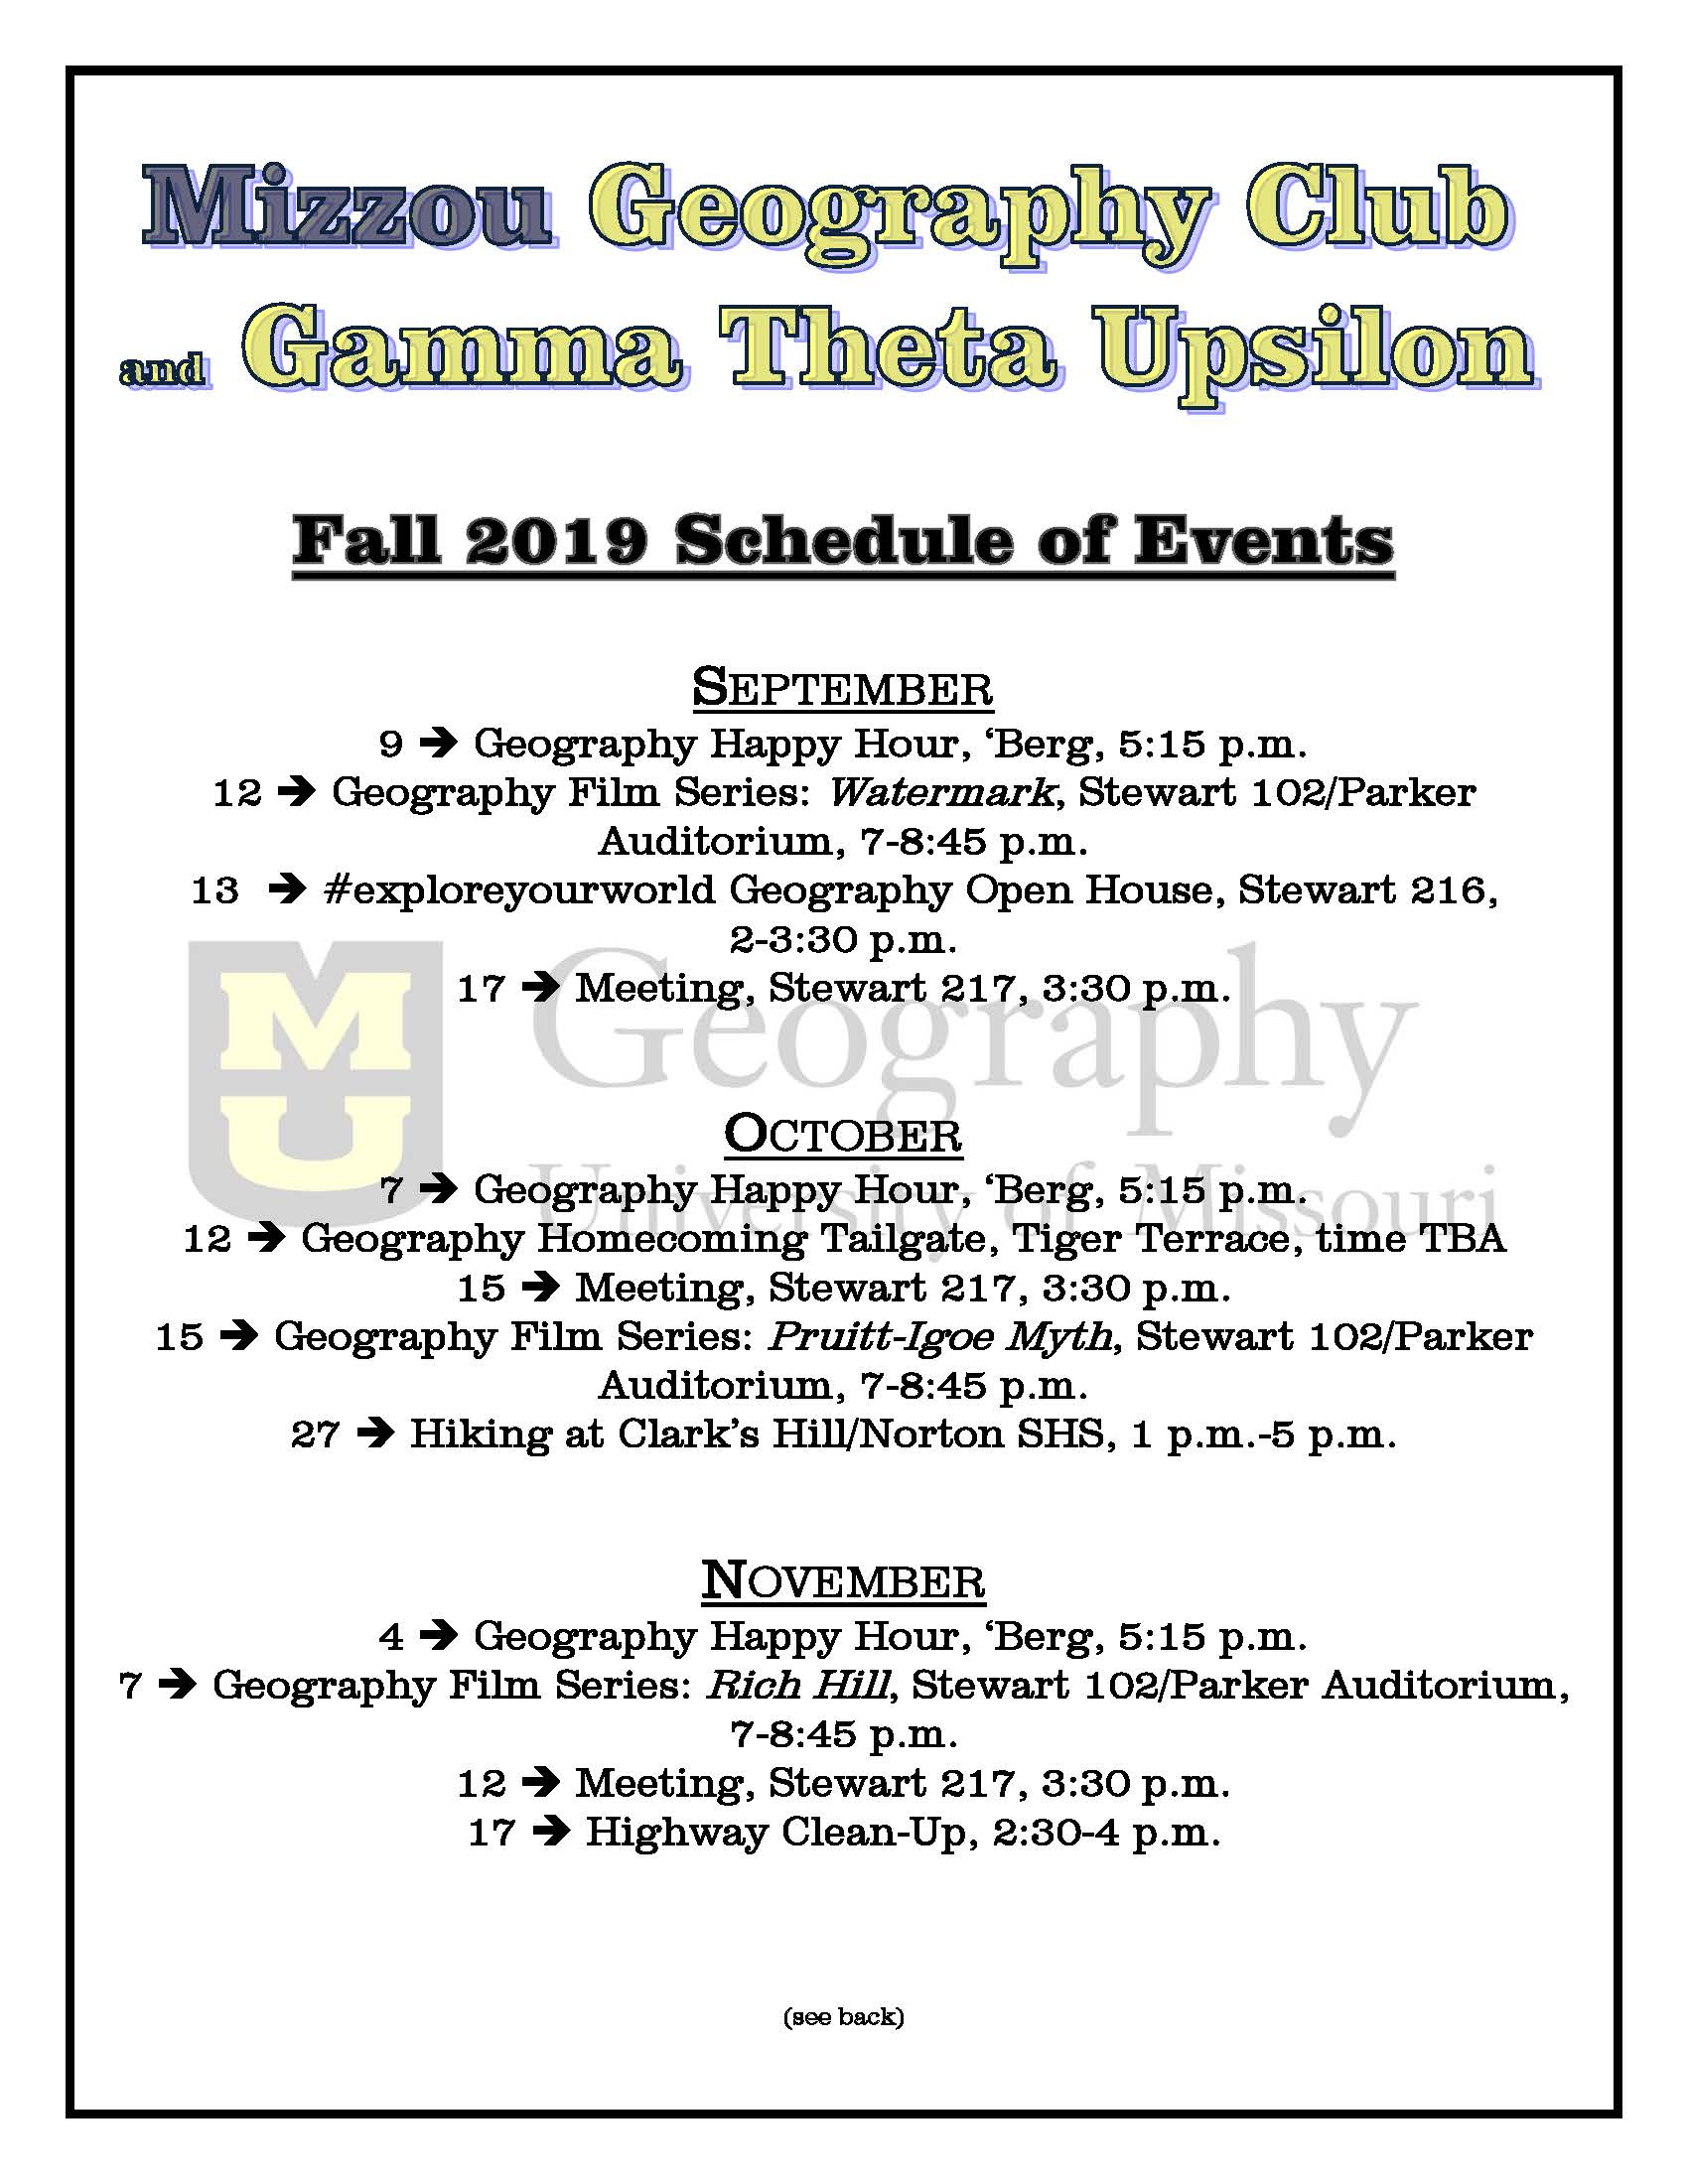 Fall 2019 Schedule of Events